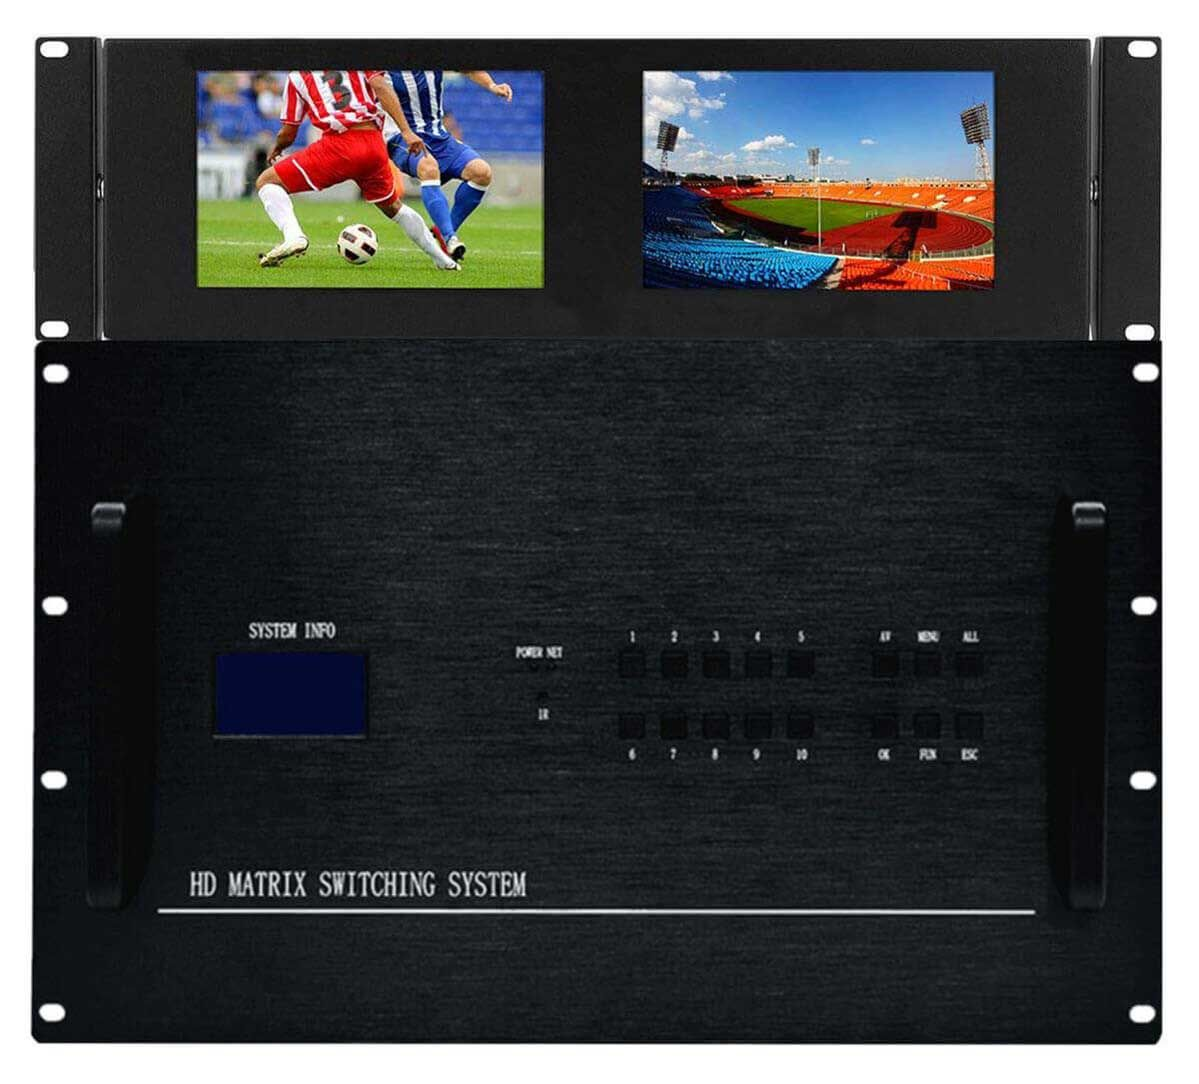 4K 32x4 HDMI Matrix HDBaseT Switch with 4-CAT5 Extenders